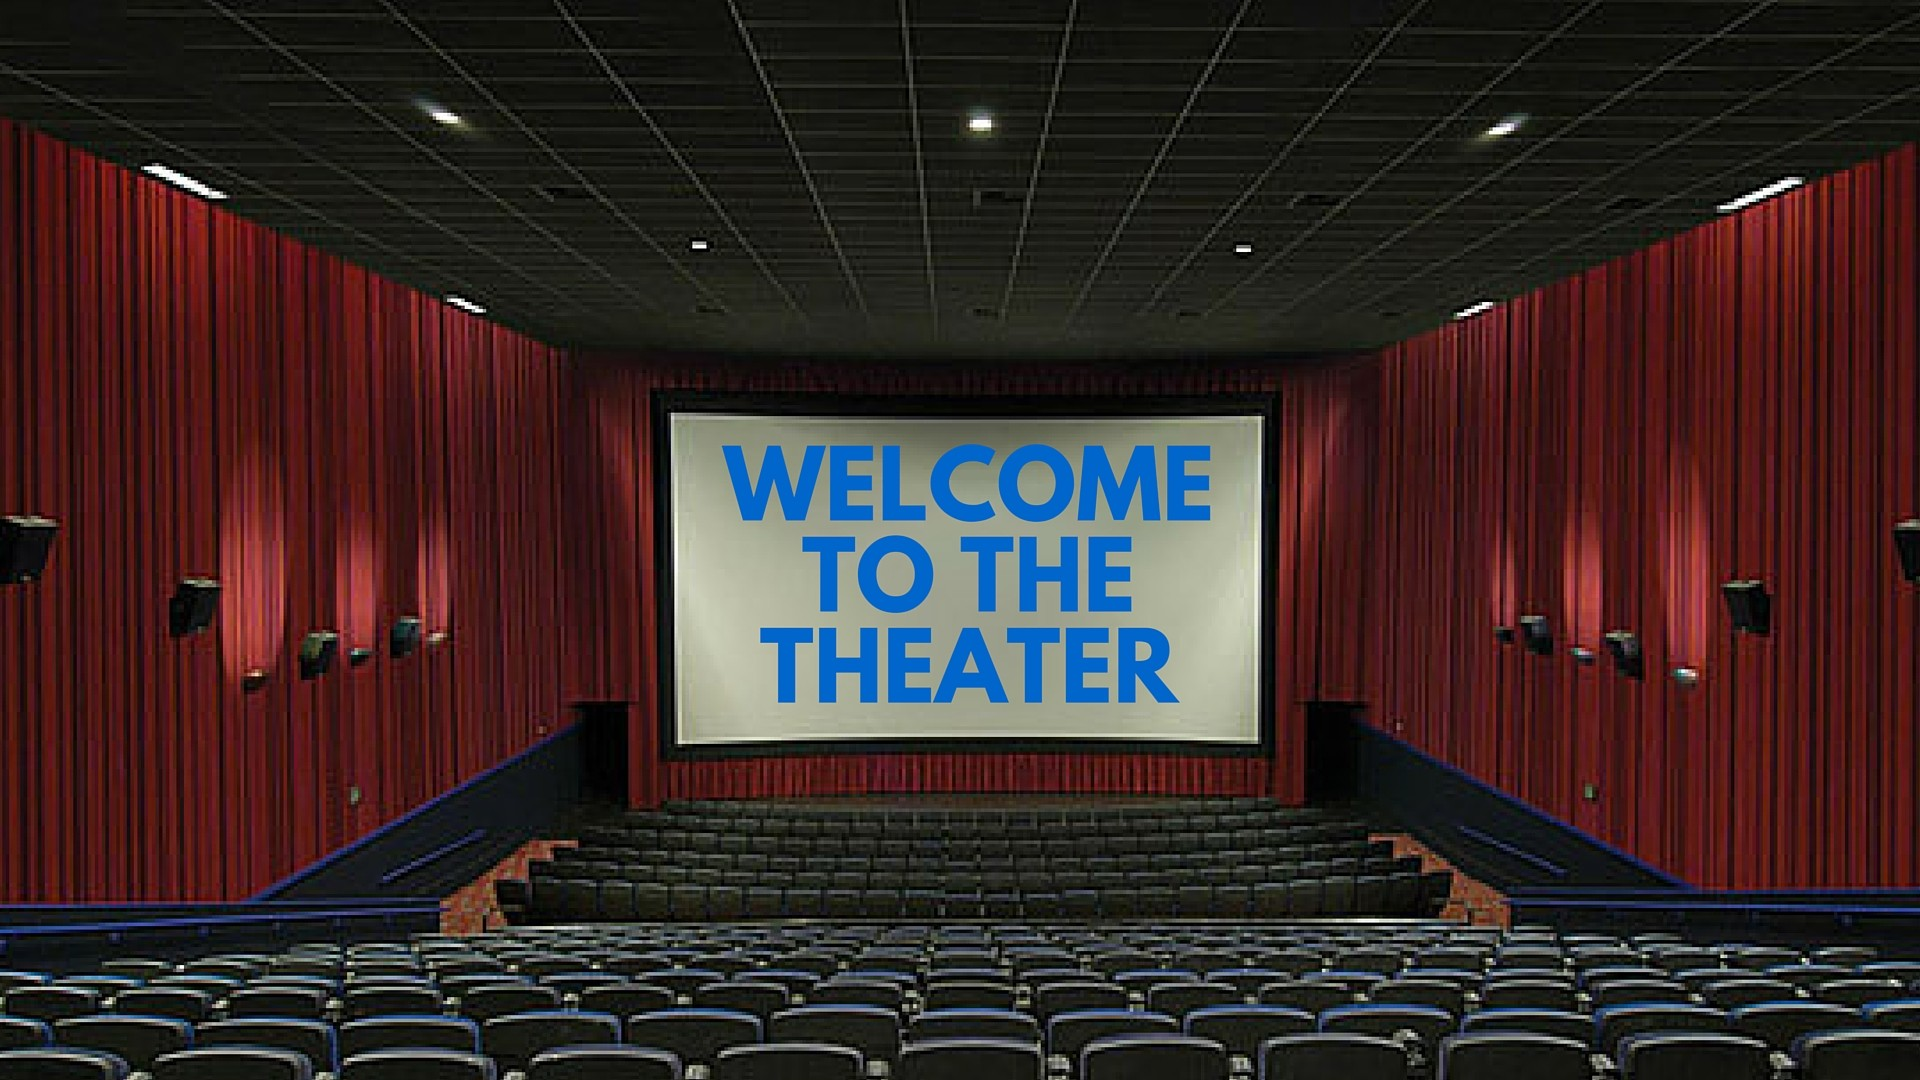 theater movie backgrounds desktop screen getwallpapers